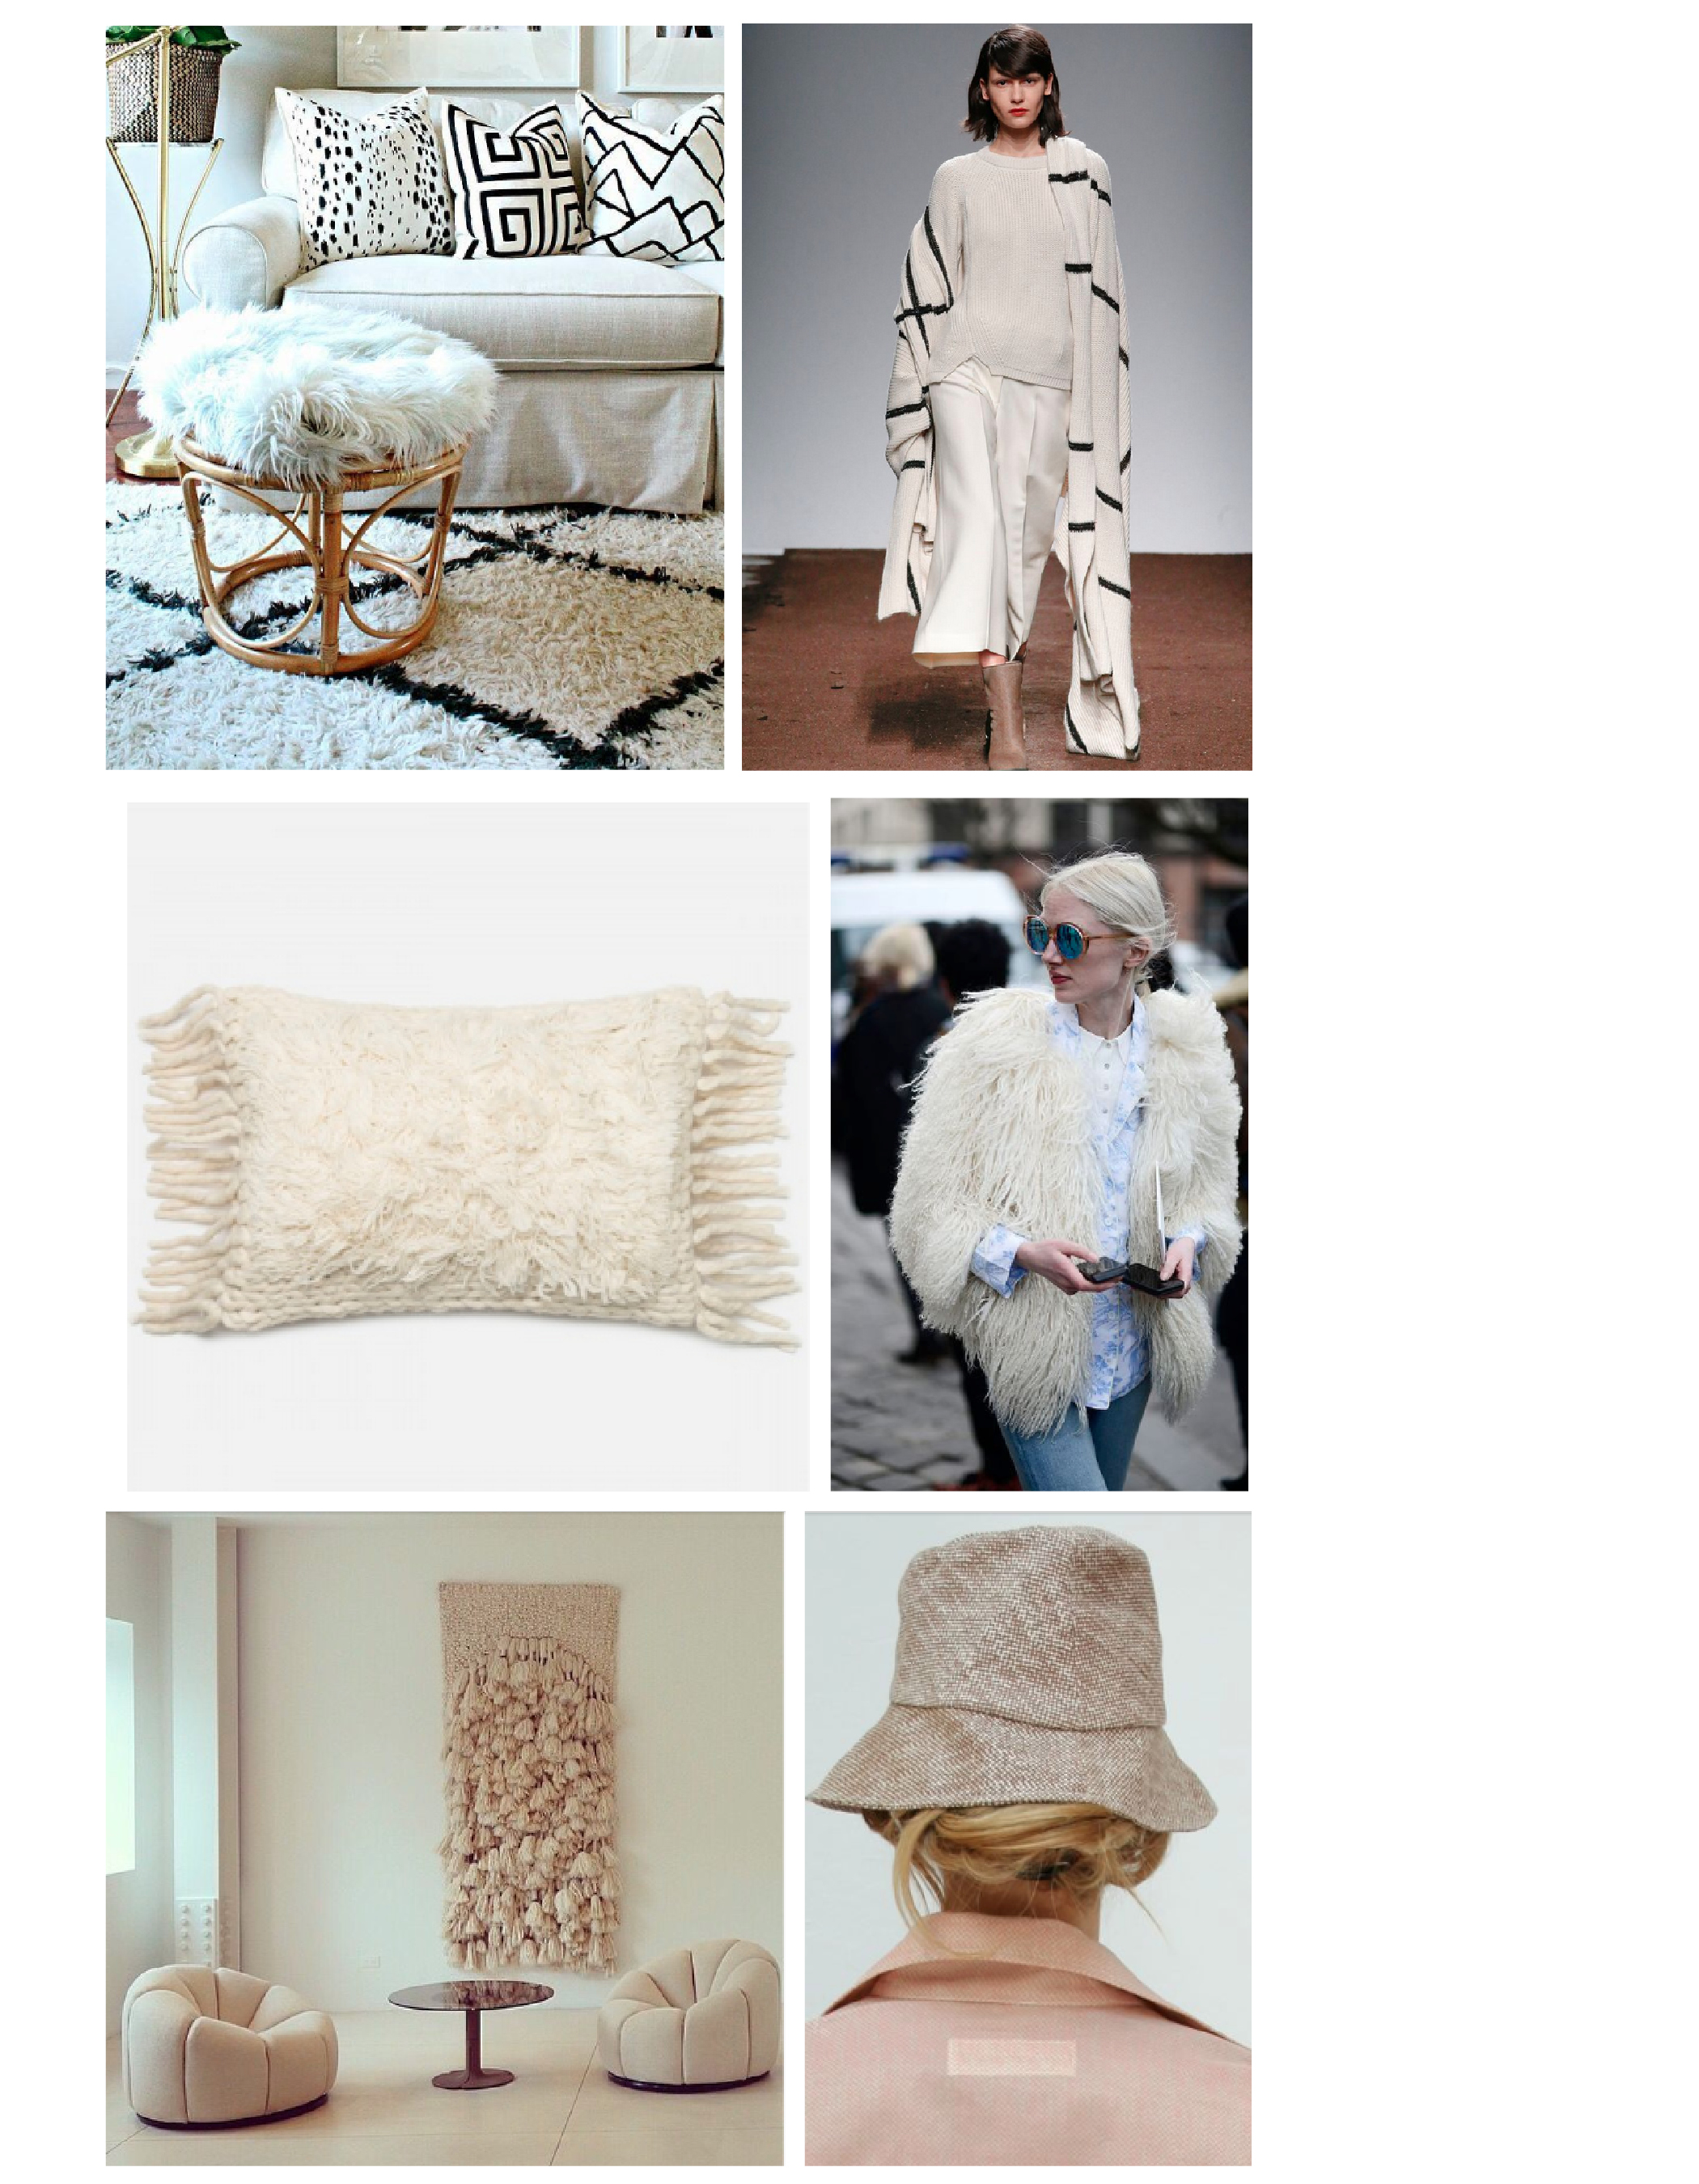 Row1 : Black and white living space by  PopSugar Home  // Insane outfit by  Christian Wijnants . Row 2:  Quila Pillow  //  Amazing Jacket . Row 3:  Pierre Paulin  // Tweed Hat from  Beklina .